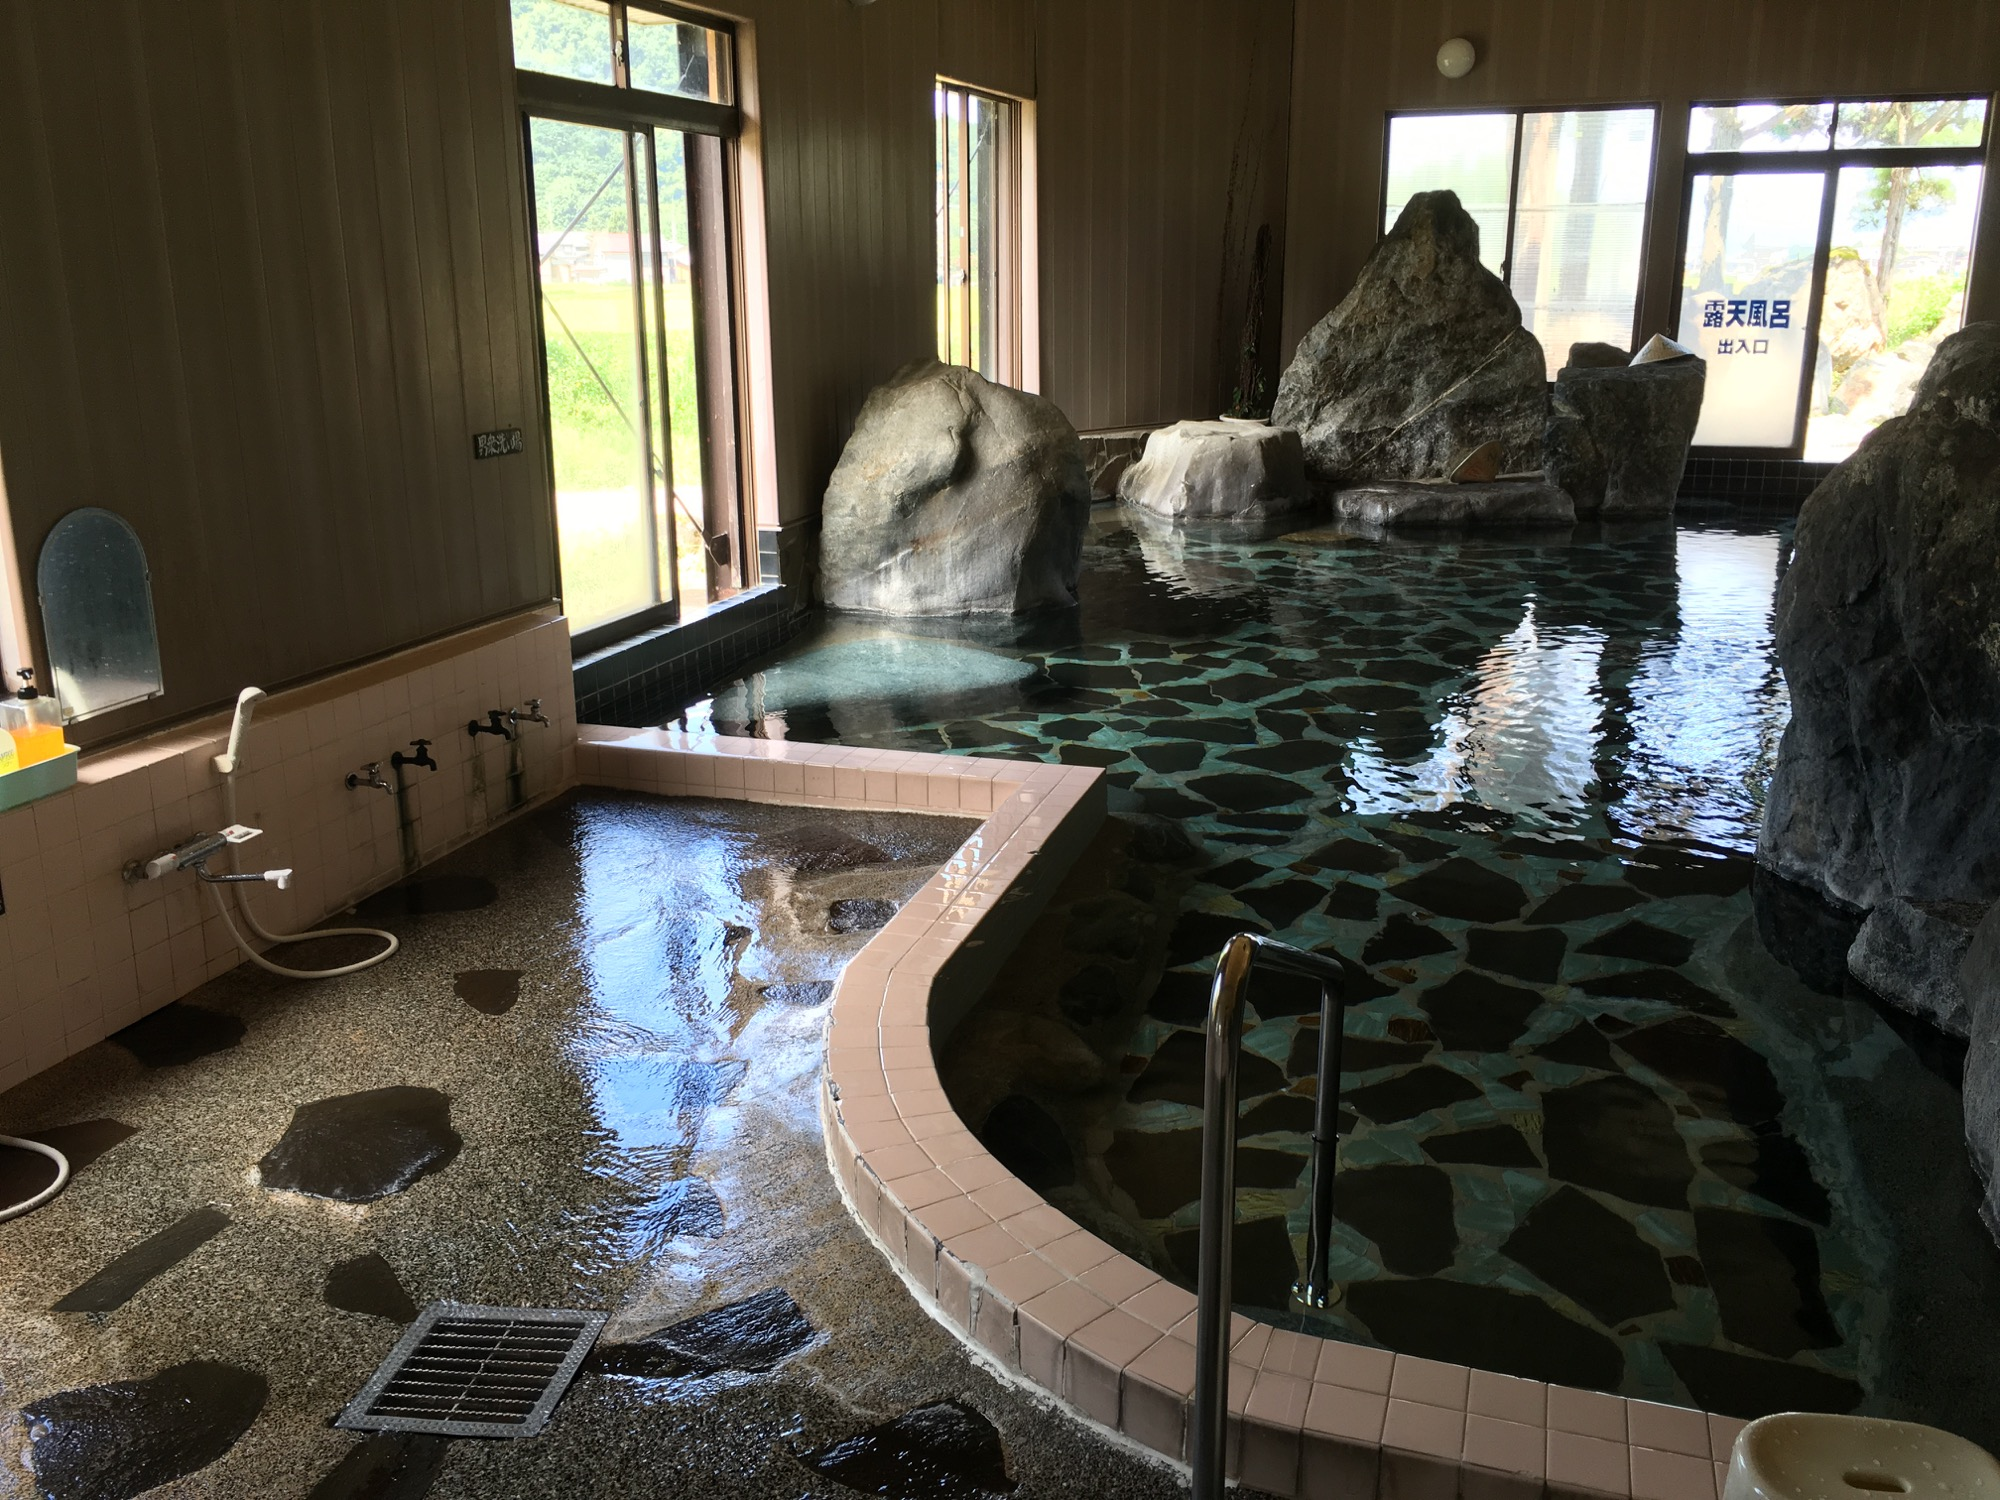 A very relaxing onsen experience (it is coed btw).